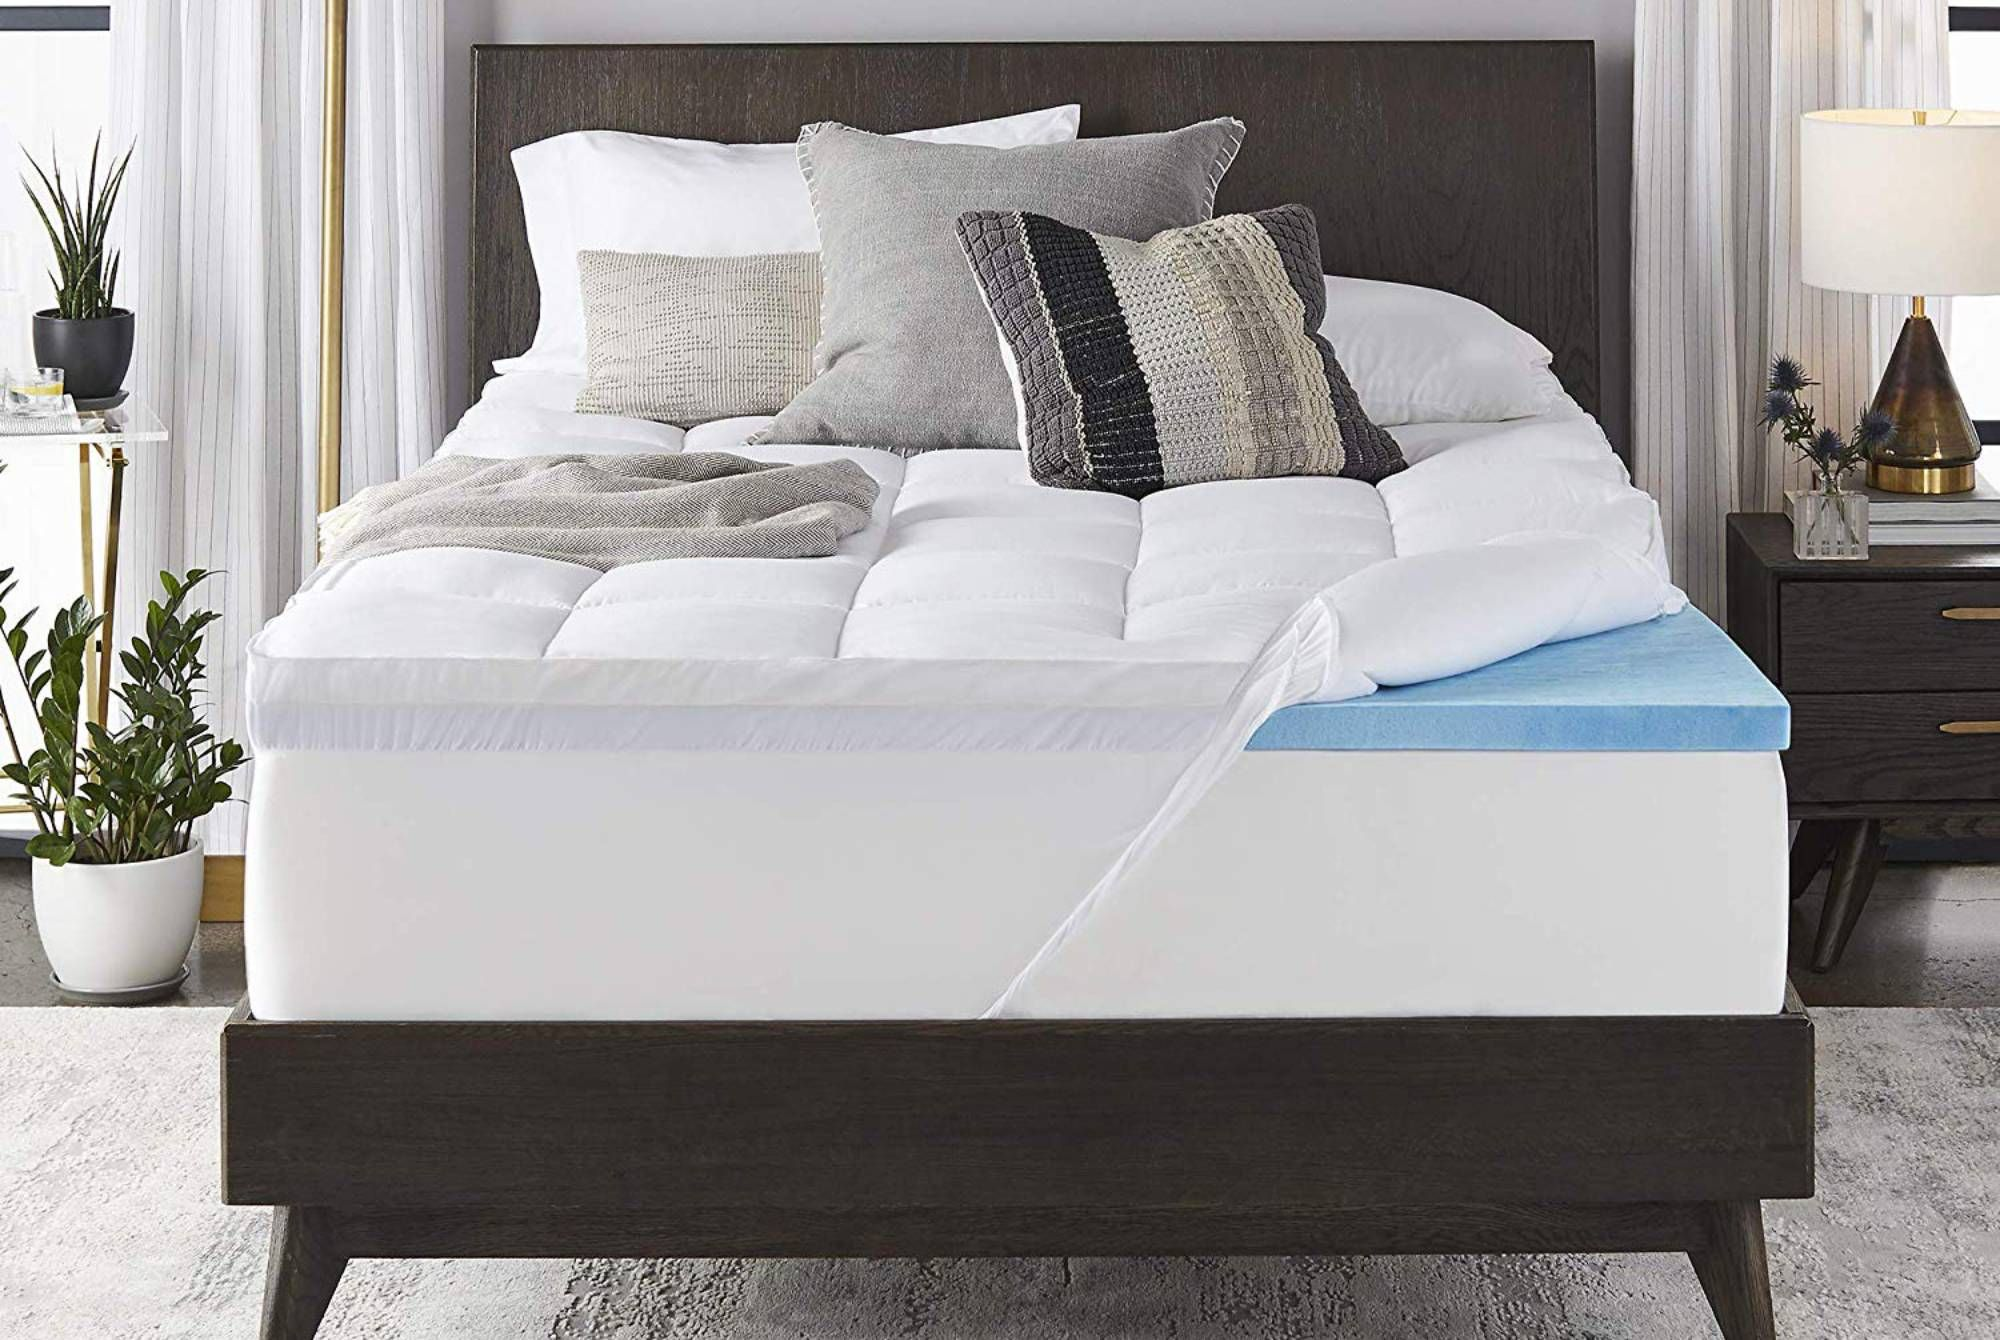 Best Mattress Topper for Side Sleepers 2020 Top 7 Choices